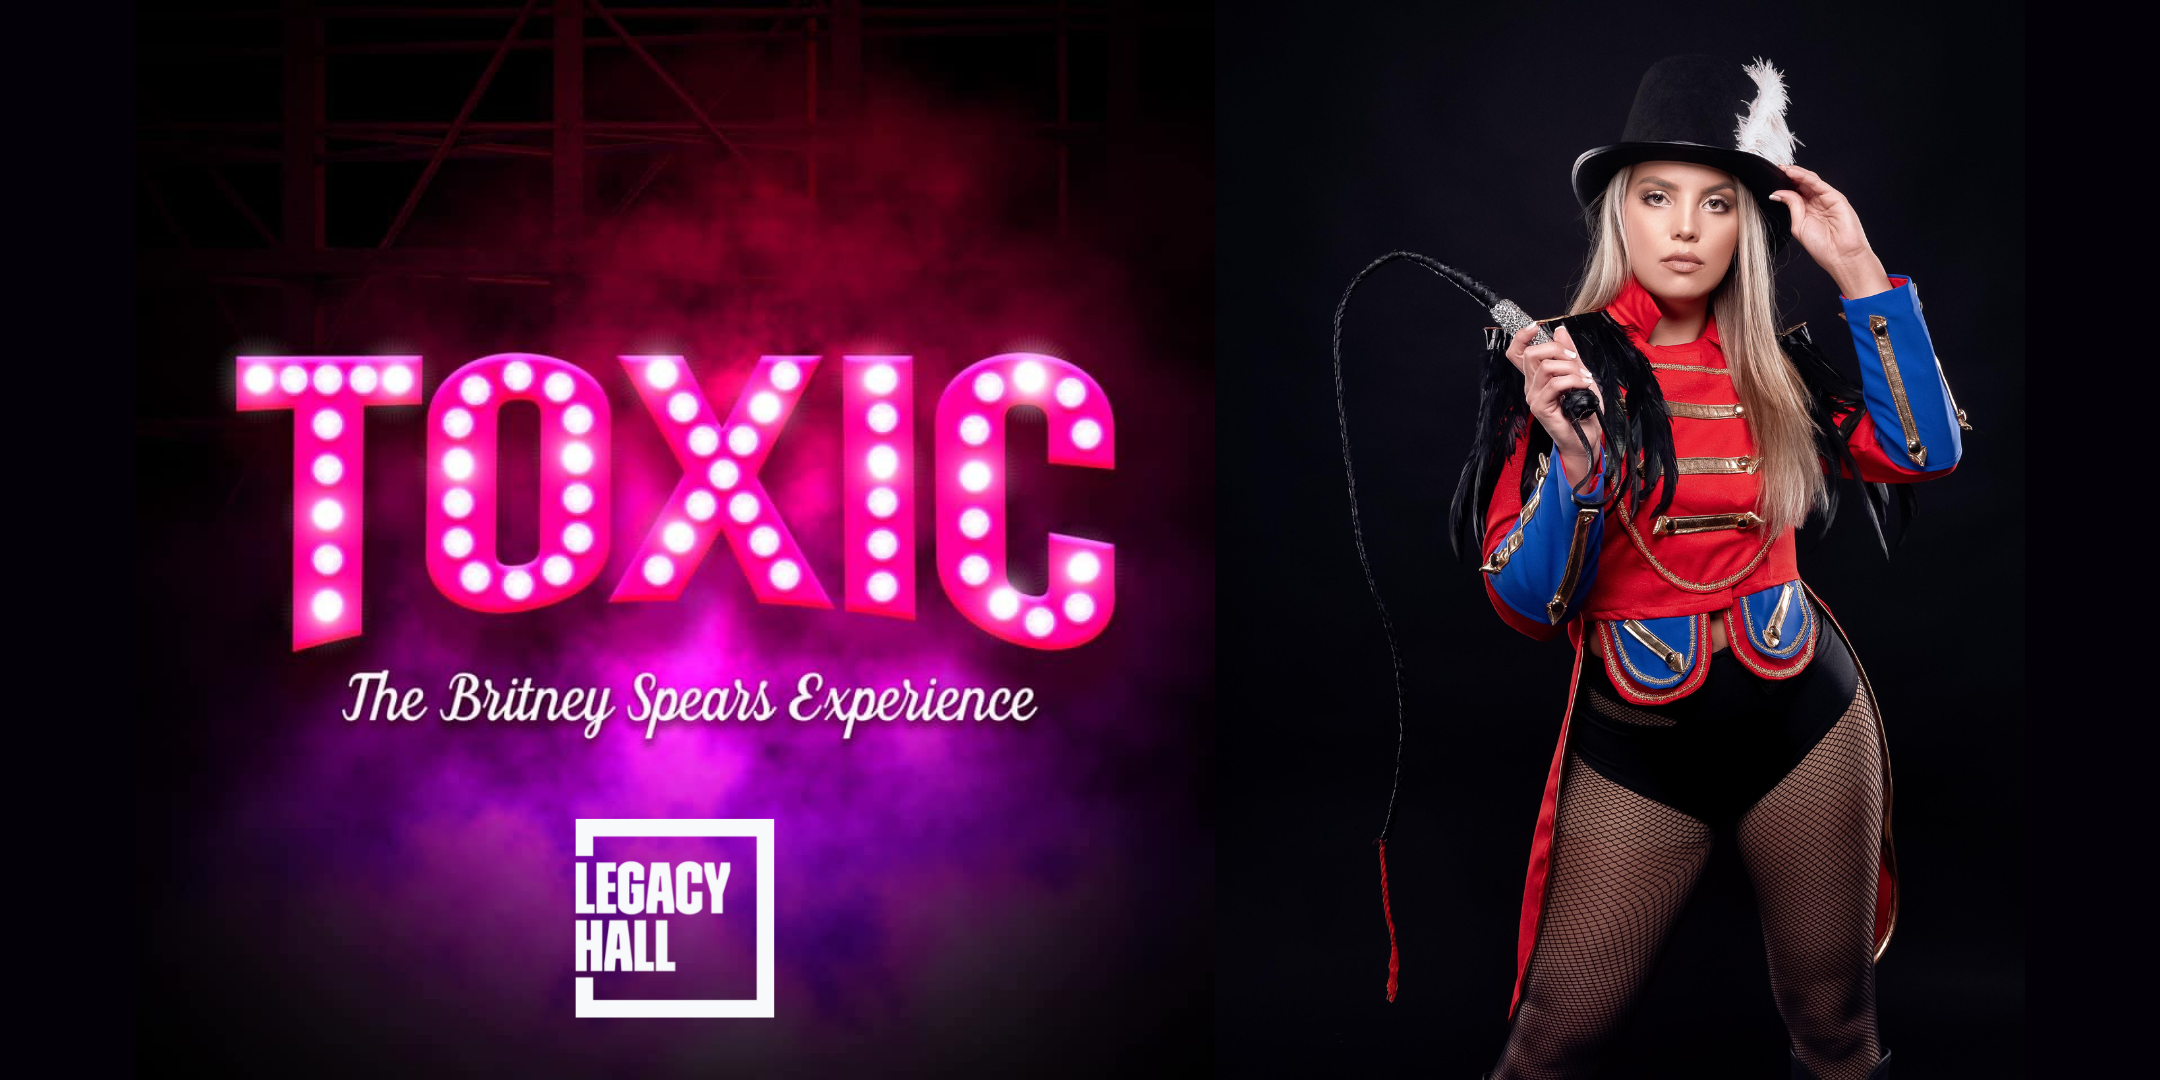 Promo image of 'Free Britney' Concert with Toxic